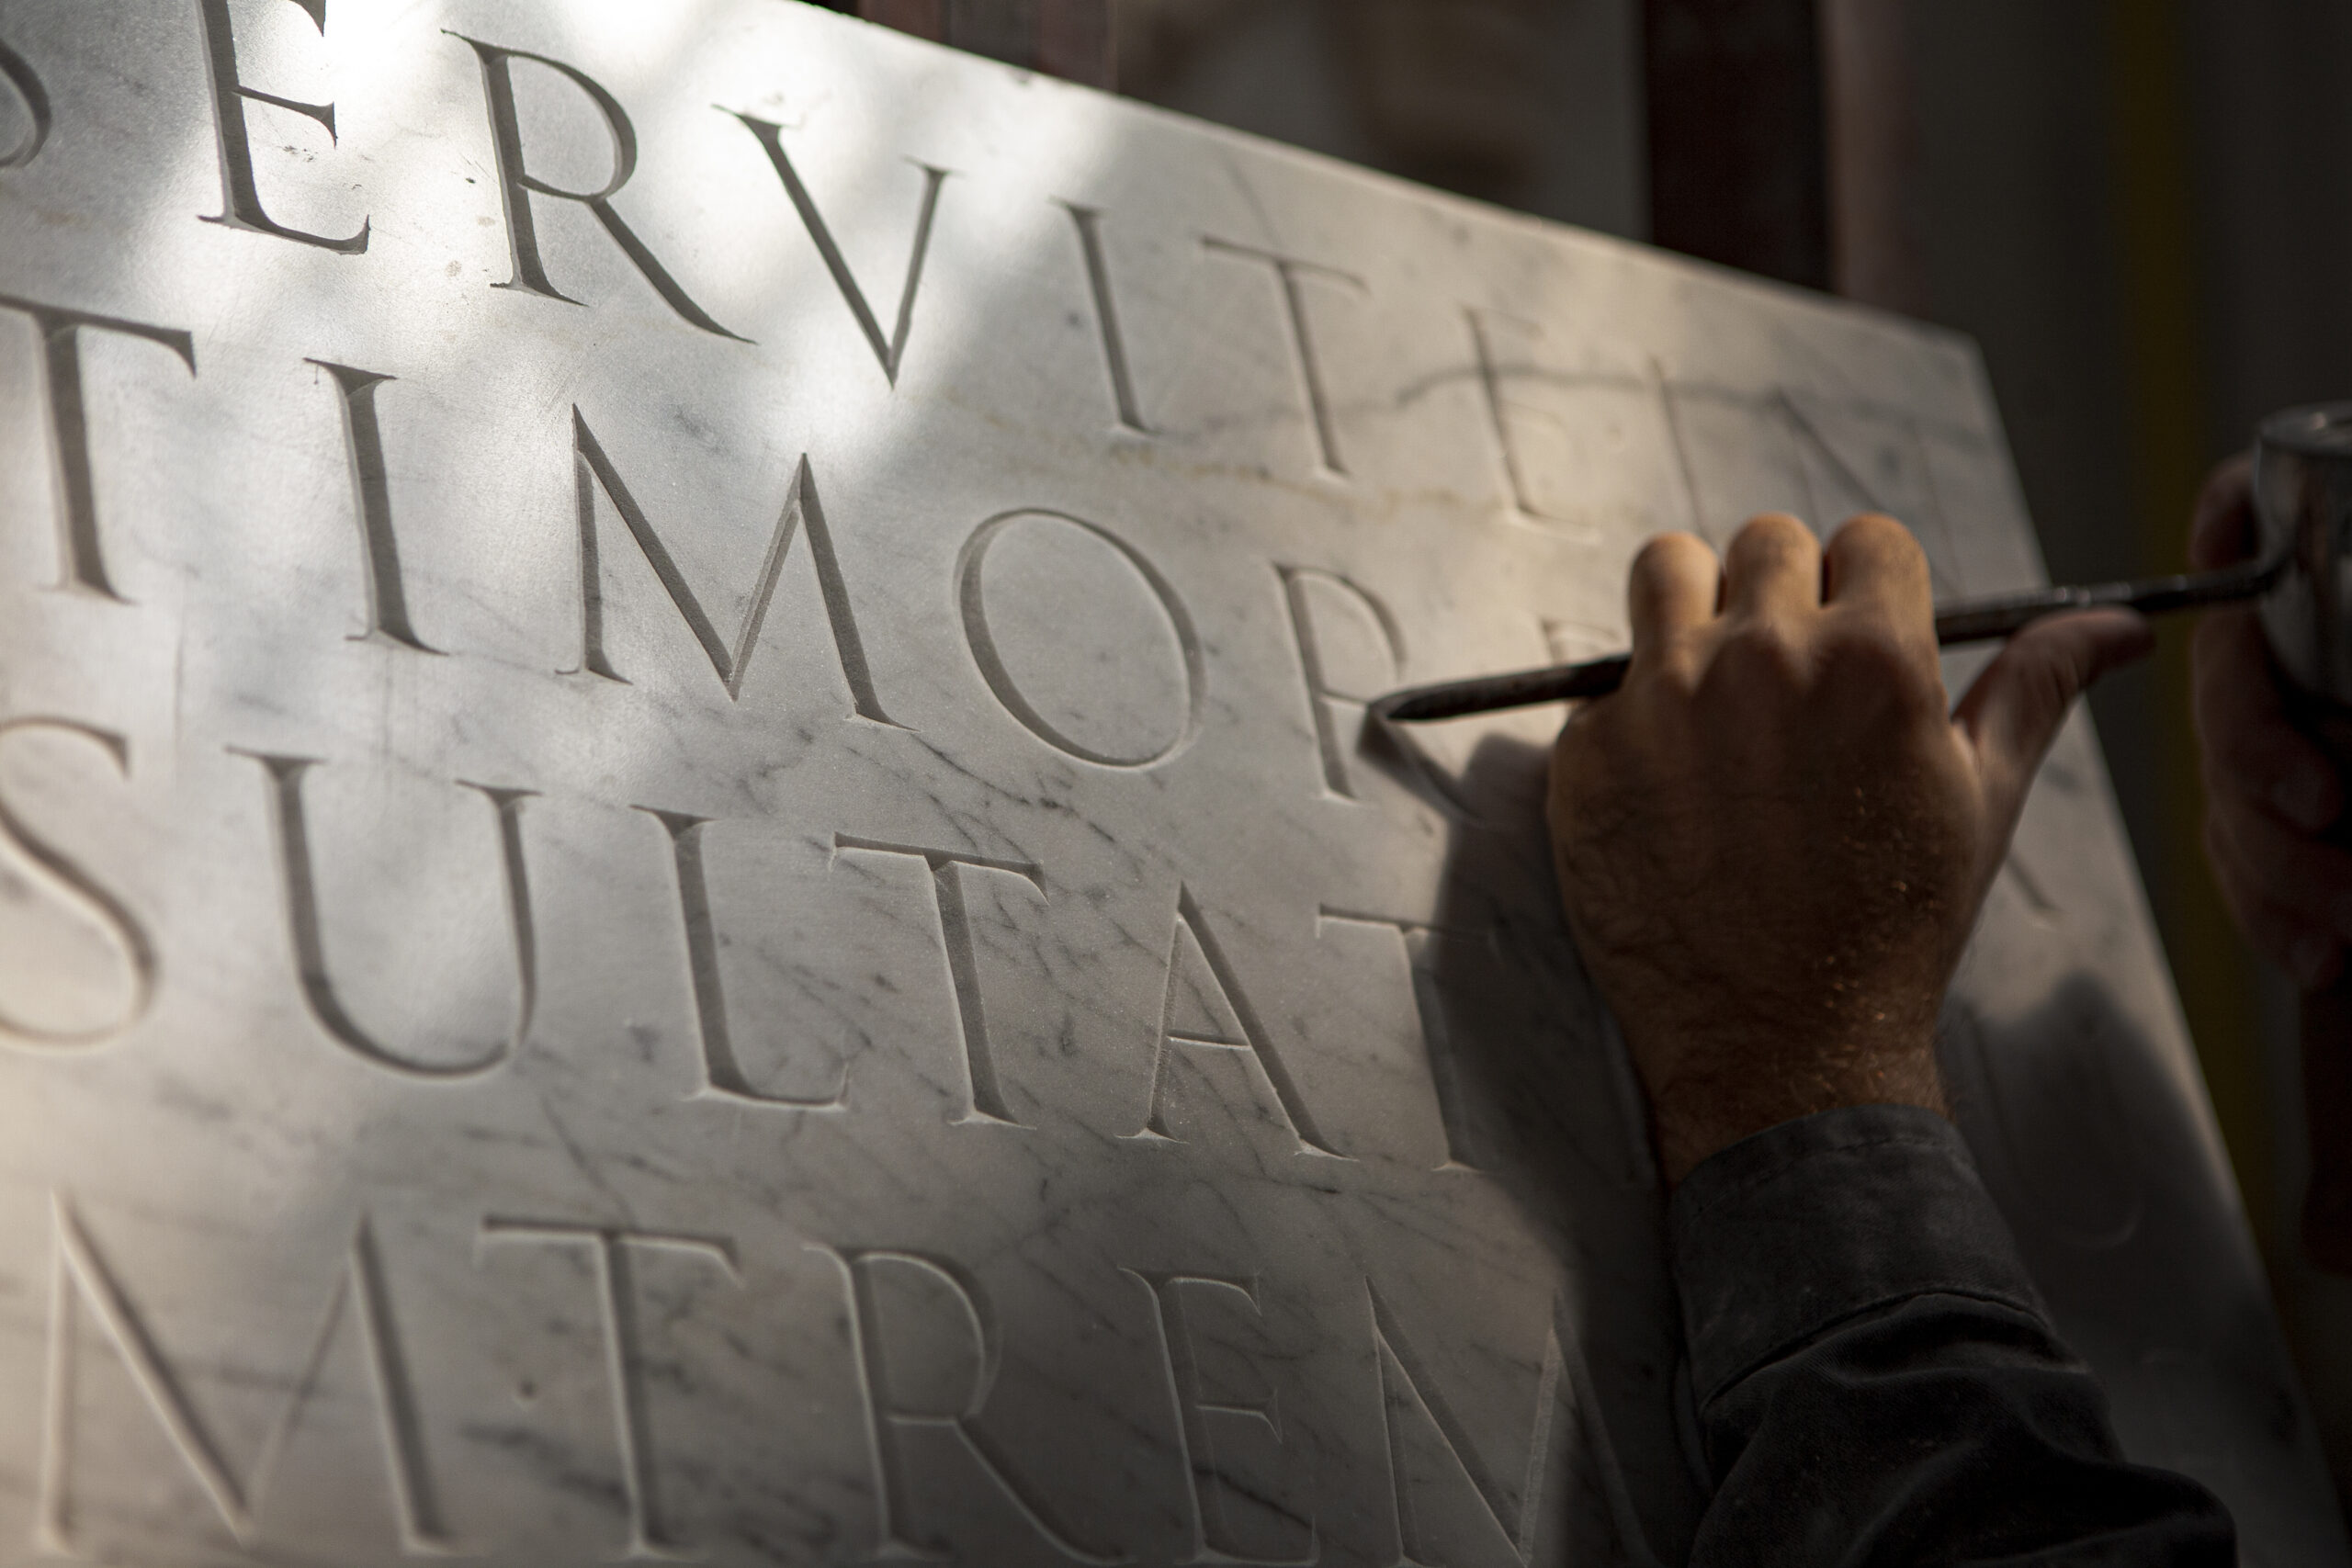 Close up of a letter carver's hand holding a chisel while carving Trajan letters on a marble plate